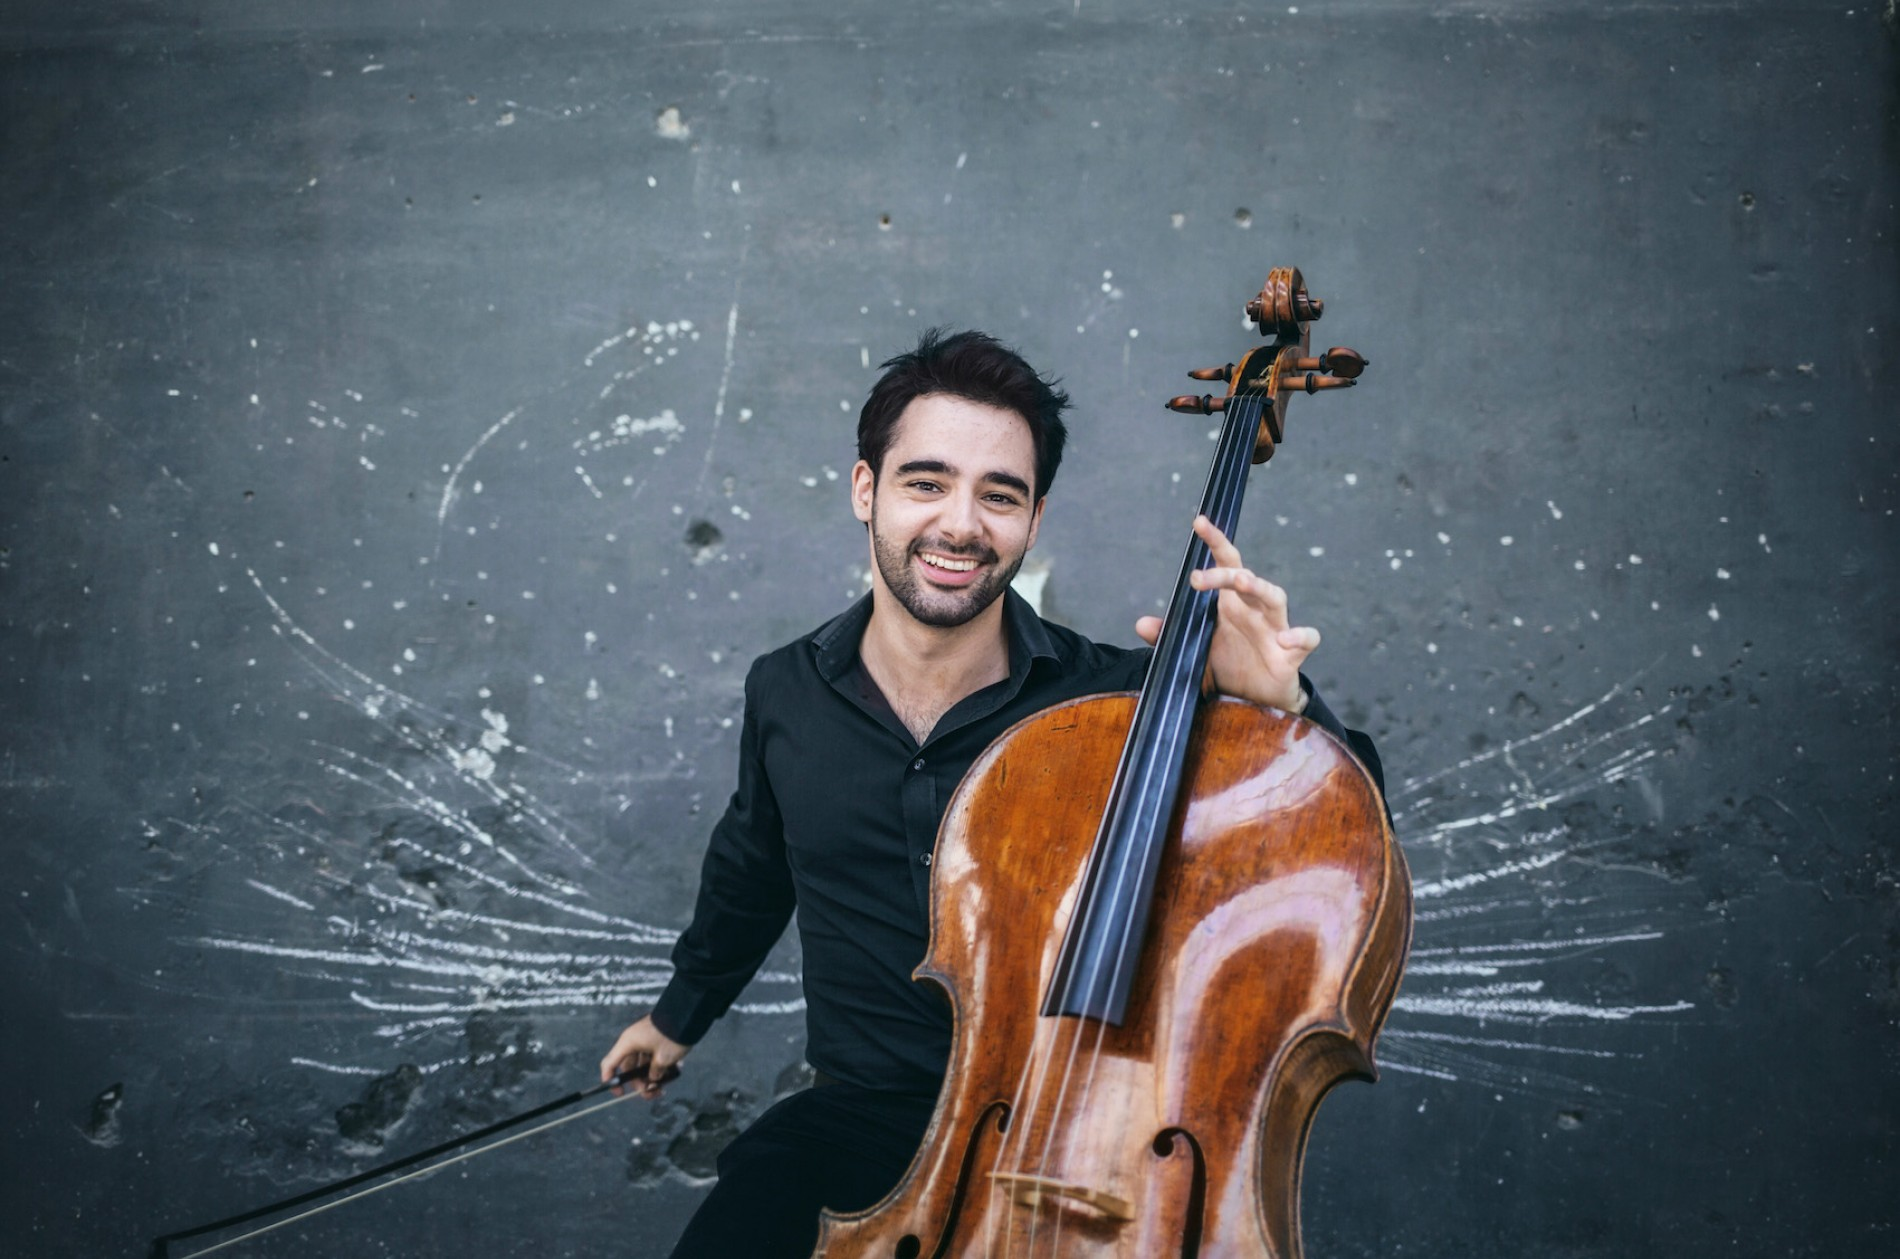 Pablo Ferrández holds his cello up in front of a spatter-patterned wall.